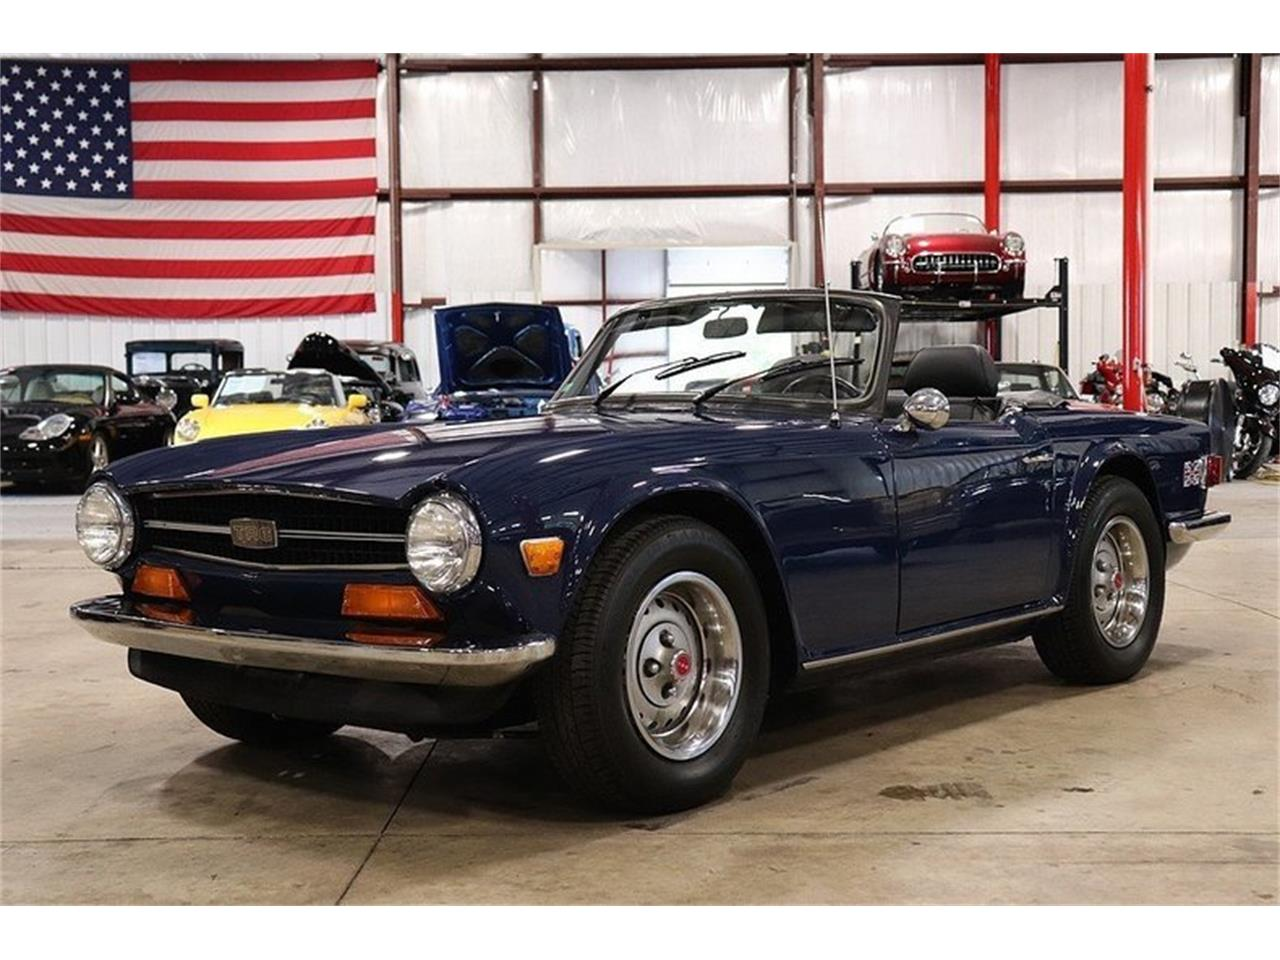 74 Tr6 Wiring Diagram, Large Picture Of 1974 Triumph Tr6 Os8j, 74 Tr6 Wiring Diagram